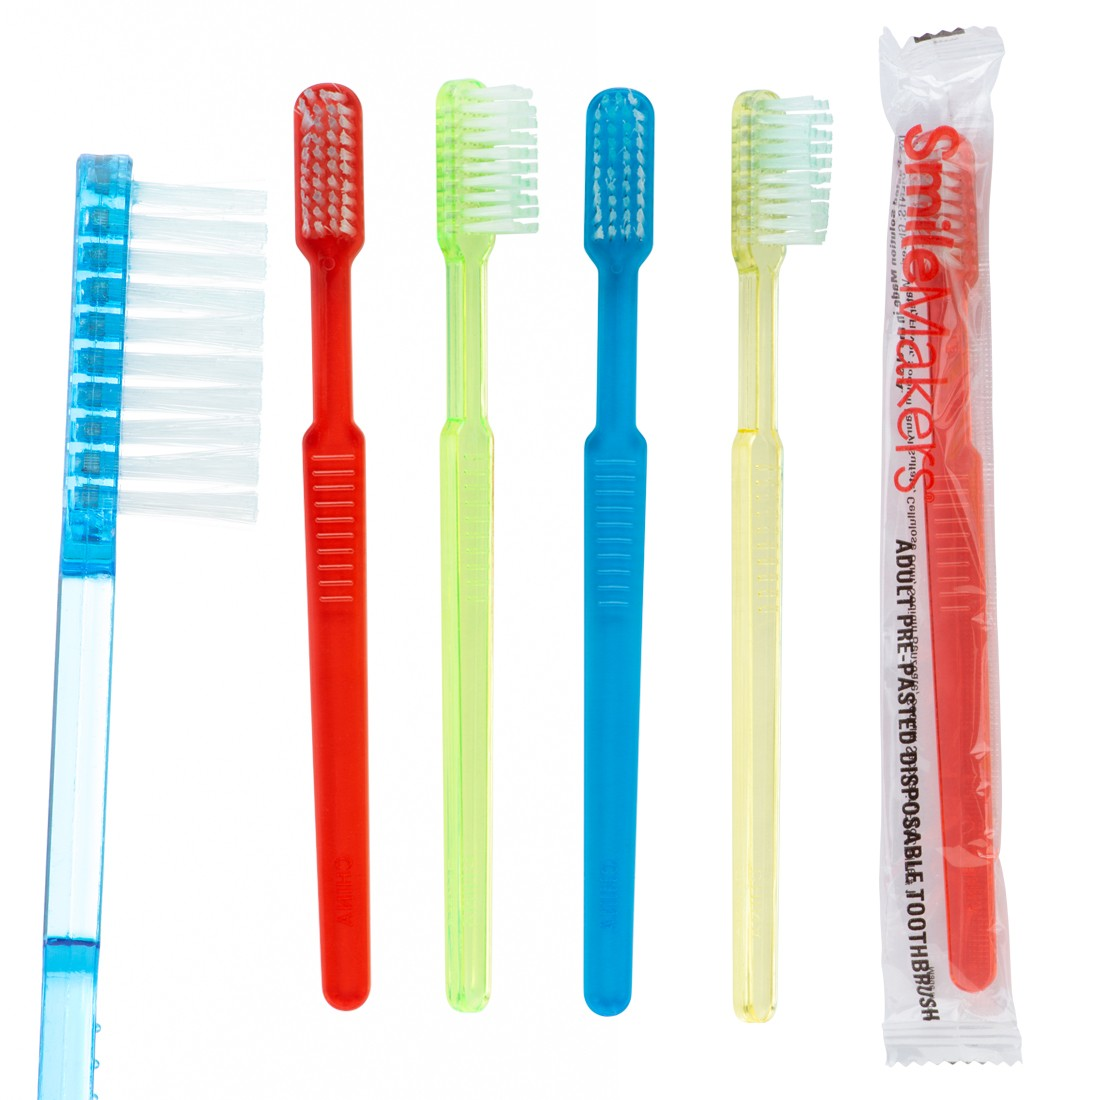 SmileCare Adult Pre-Pasted Disposable Toothbrushes [image]